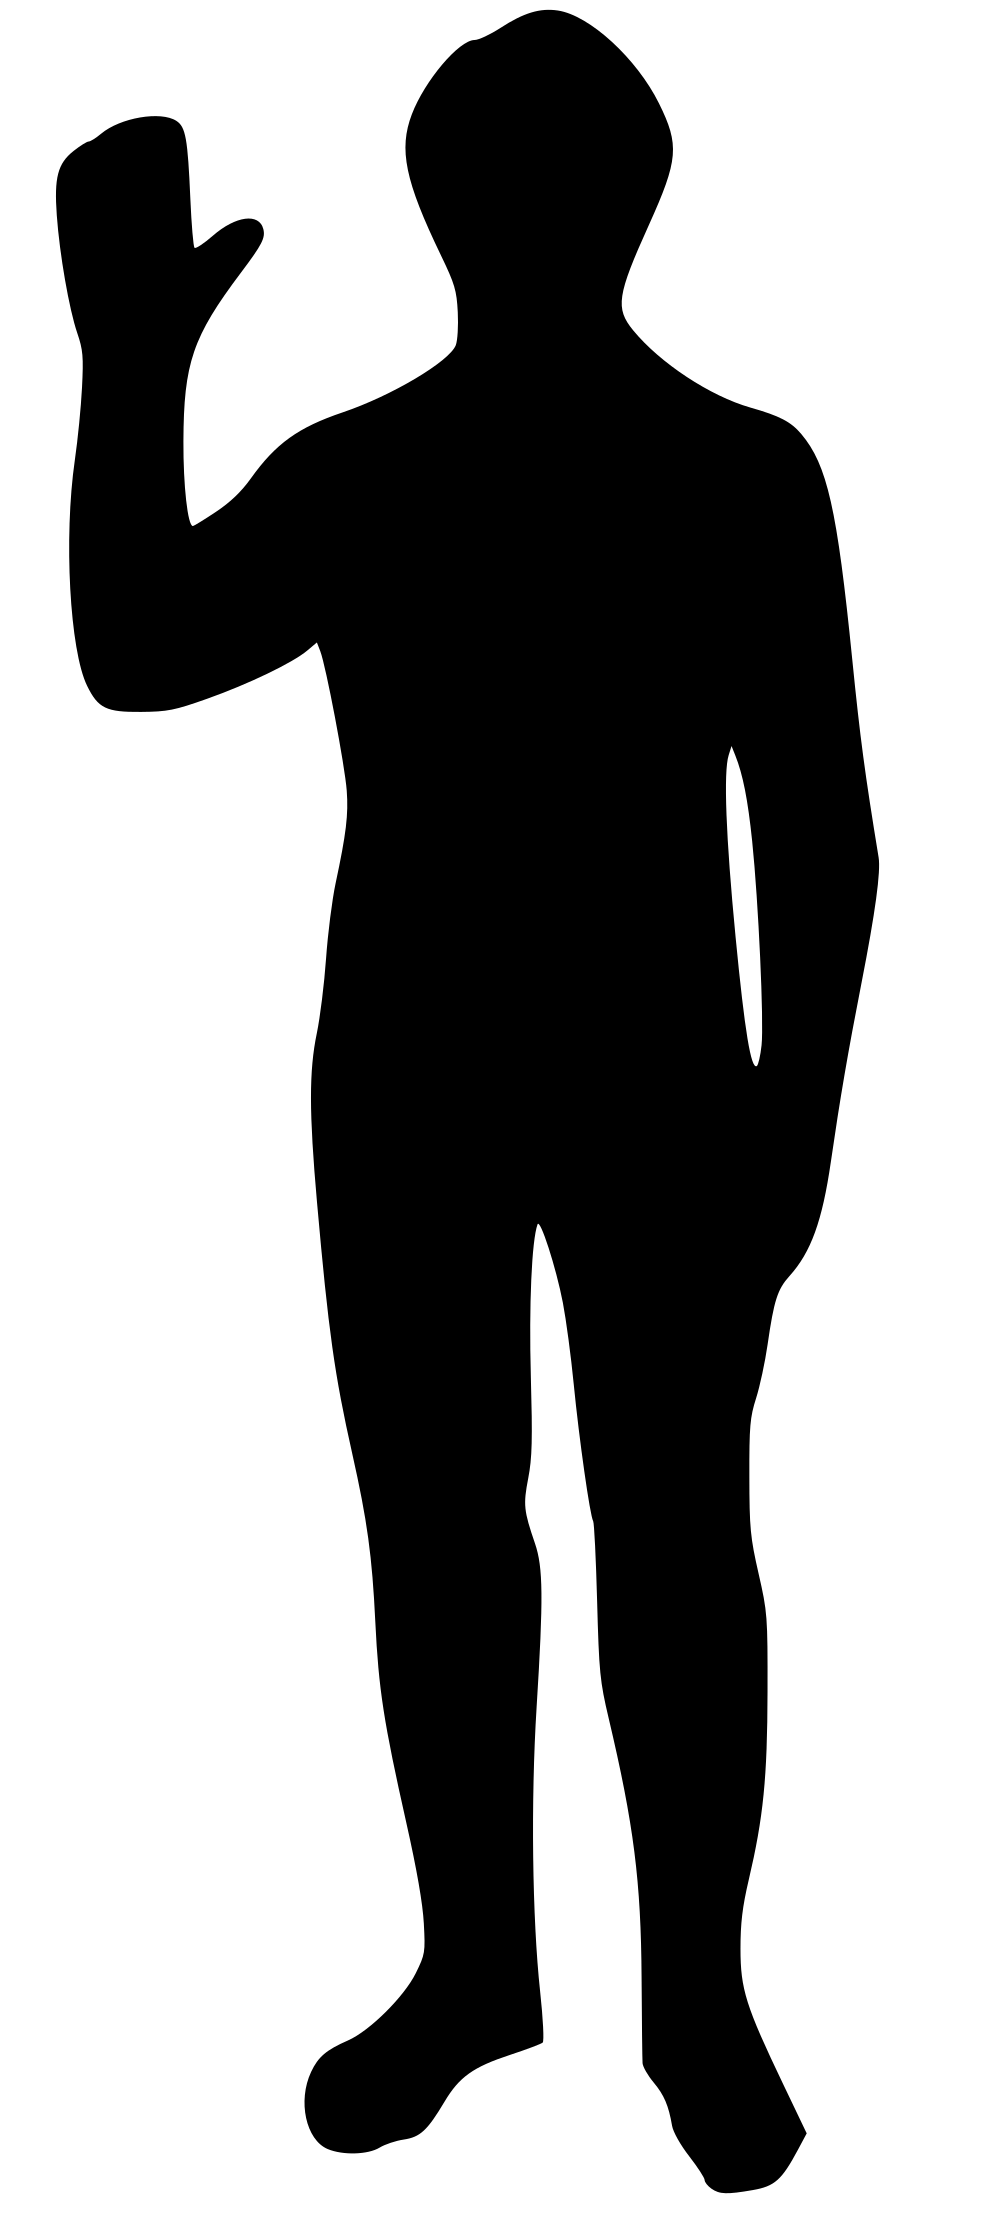 Human silhouette png. File outline svg wikimedia